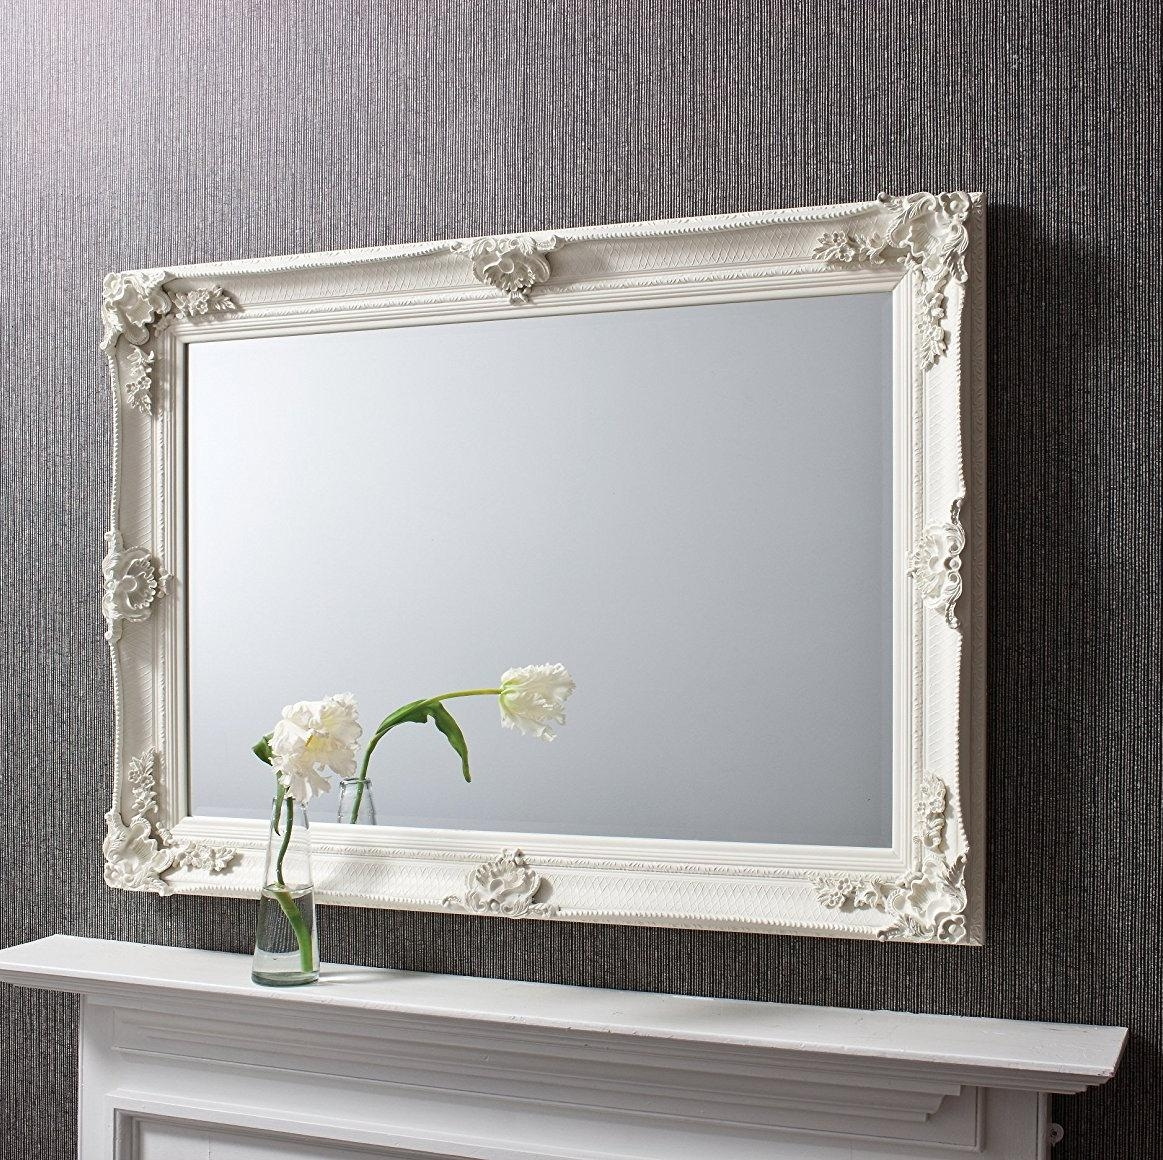 Decorative Mirrors | Exclusive Mirrors With Regard To Cream Ornate Mirror (Image 3 of 20)